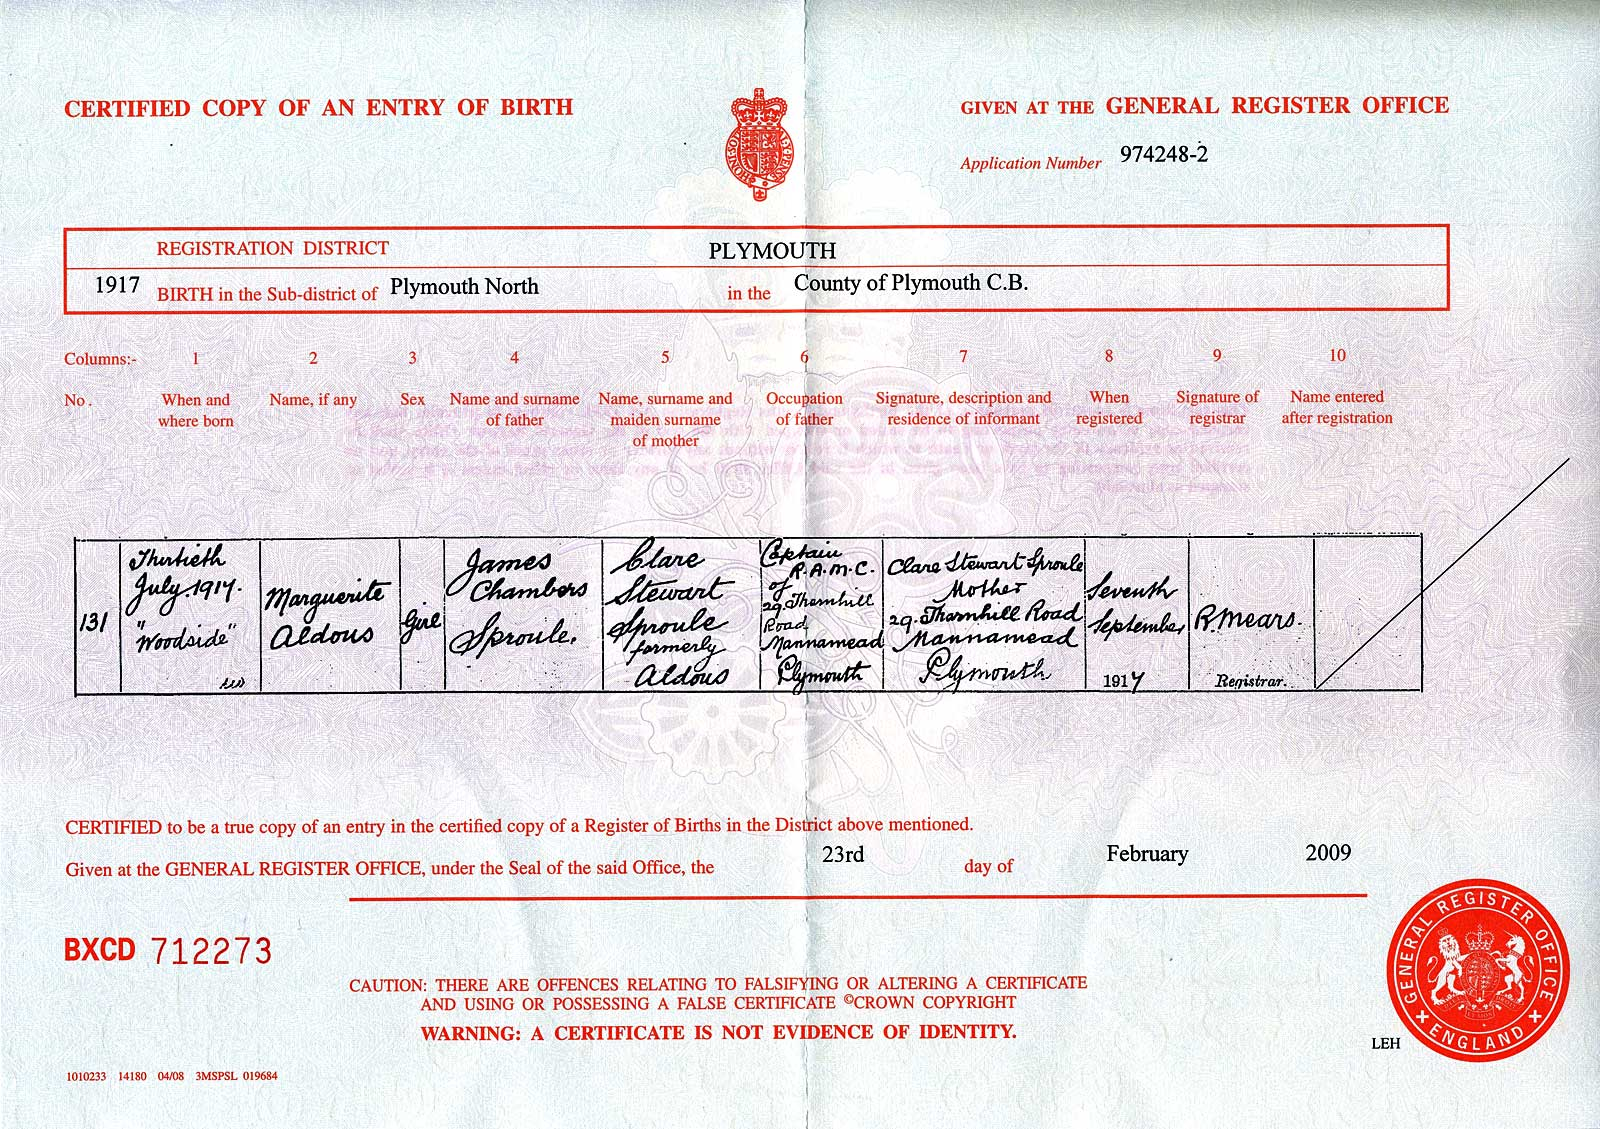 Ciaofamiglia birth marriage death places dates certificates 1995 88 dover living at seabrook hythe kent xflitez Image collections